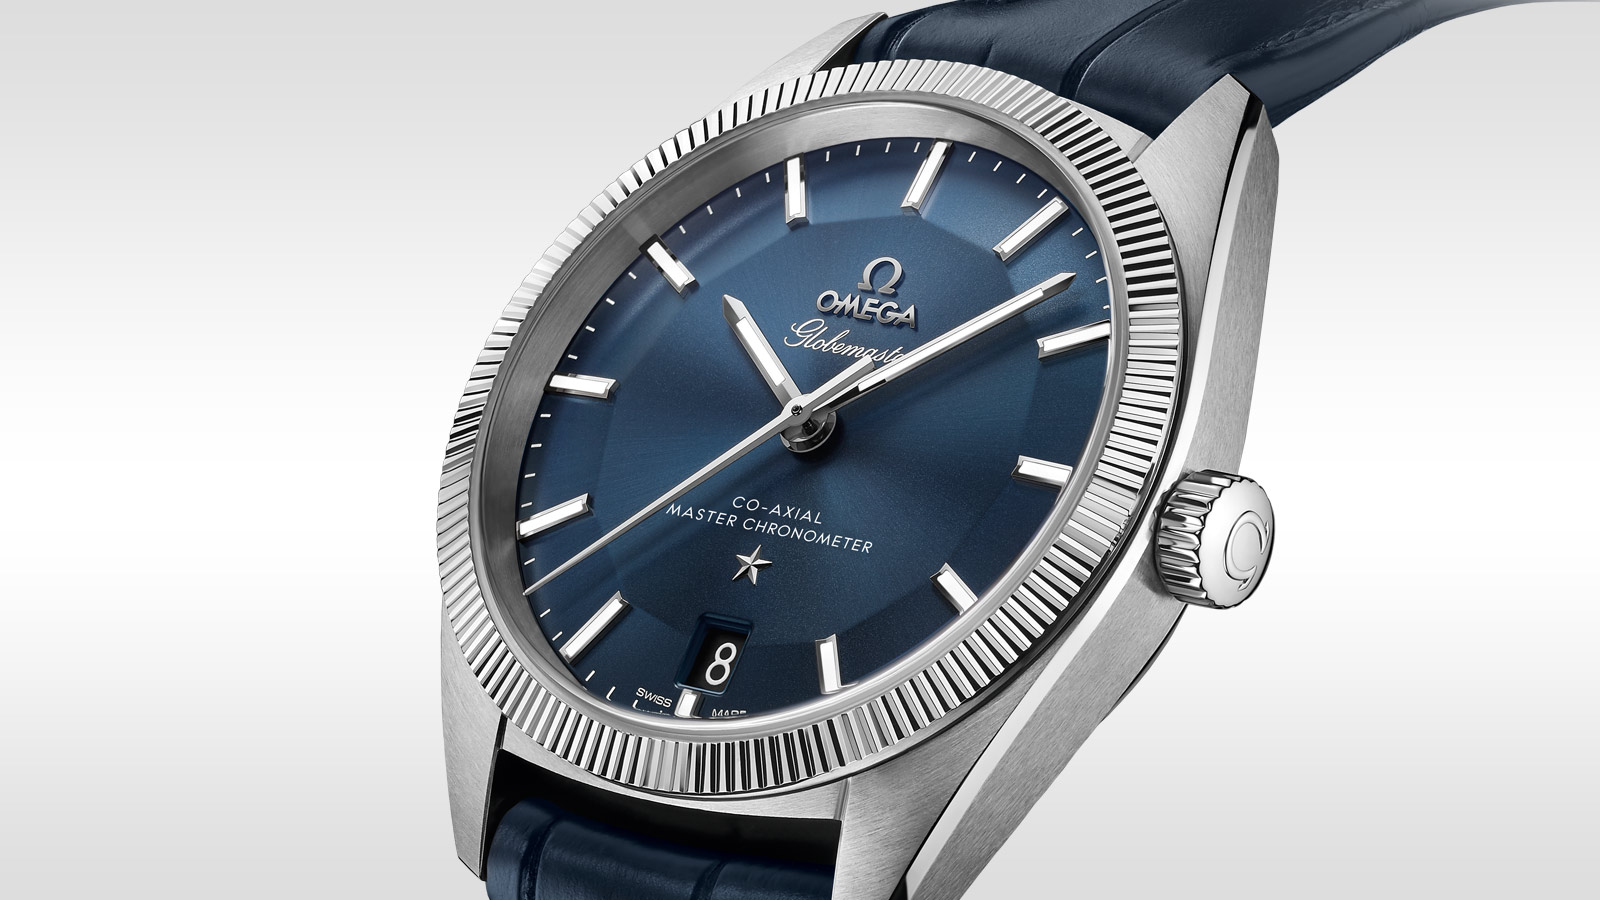 The Globemaster from Omega is a chic, stylish option to get you through humpday